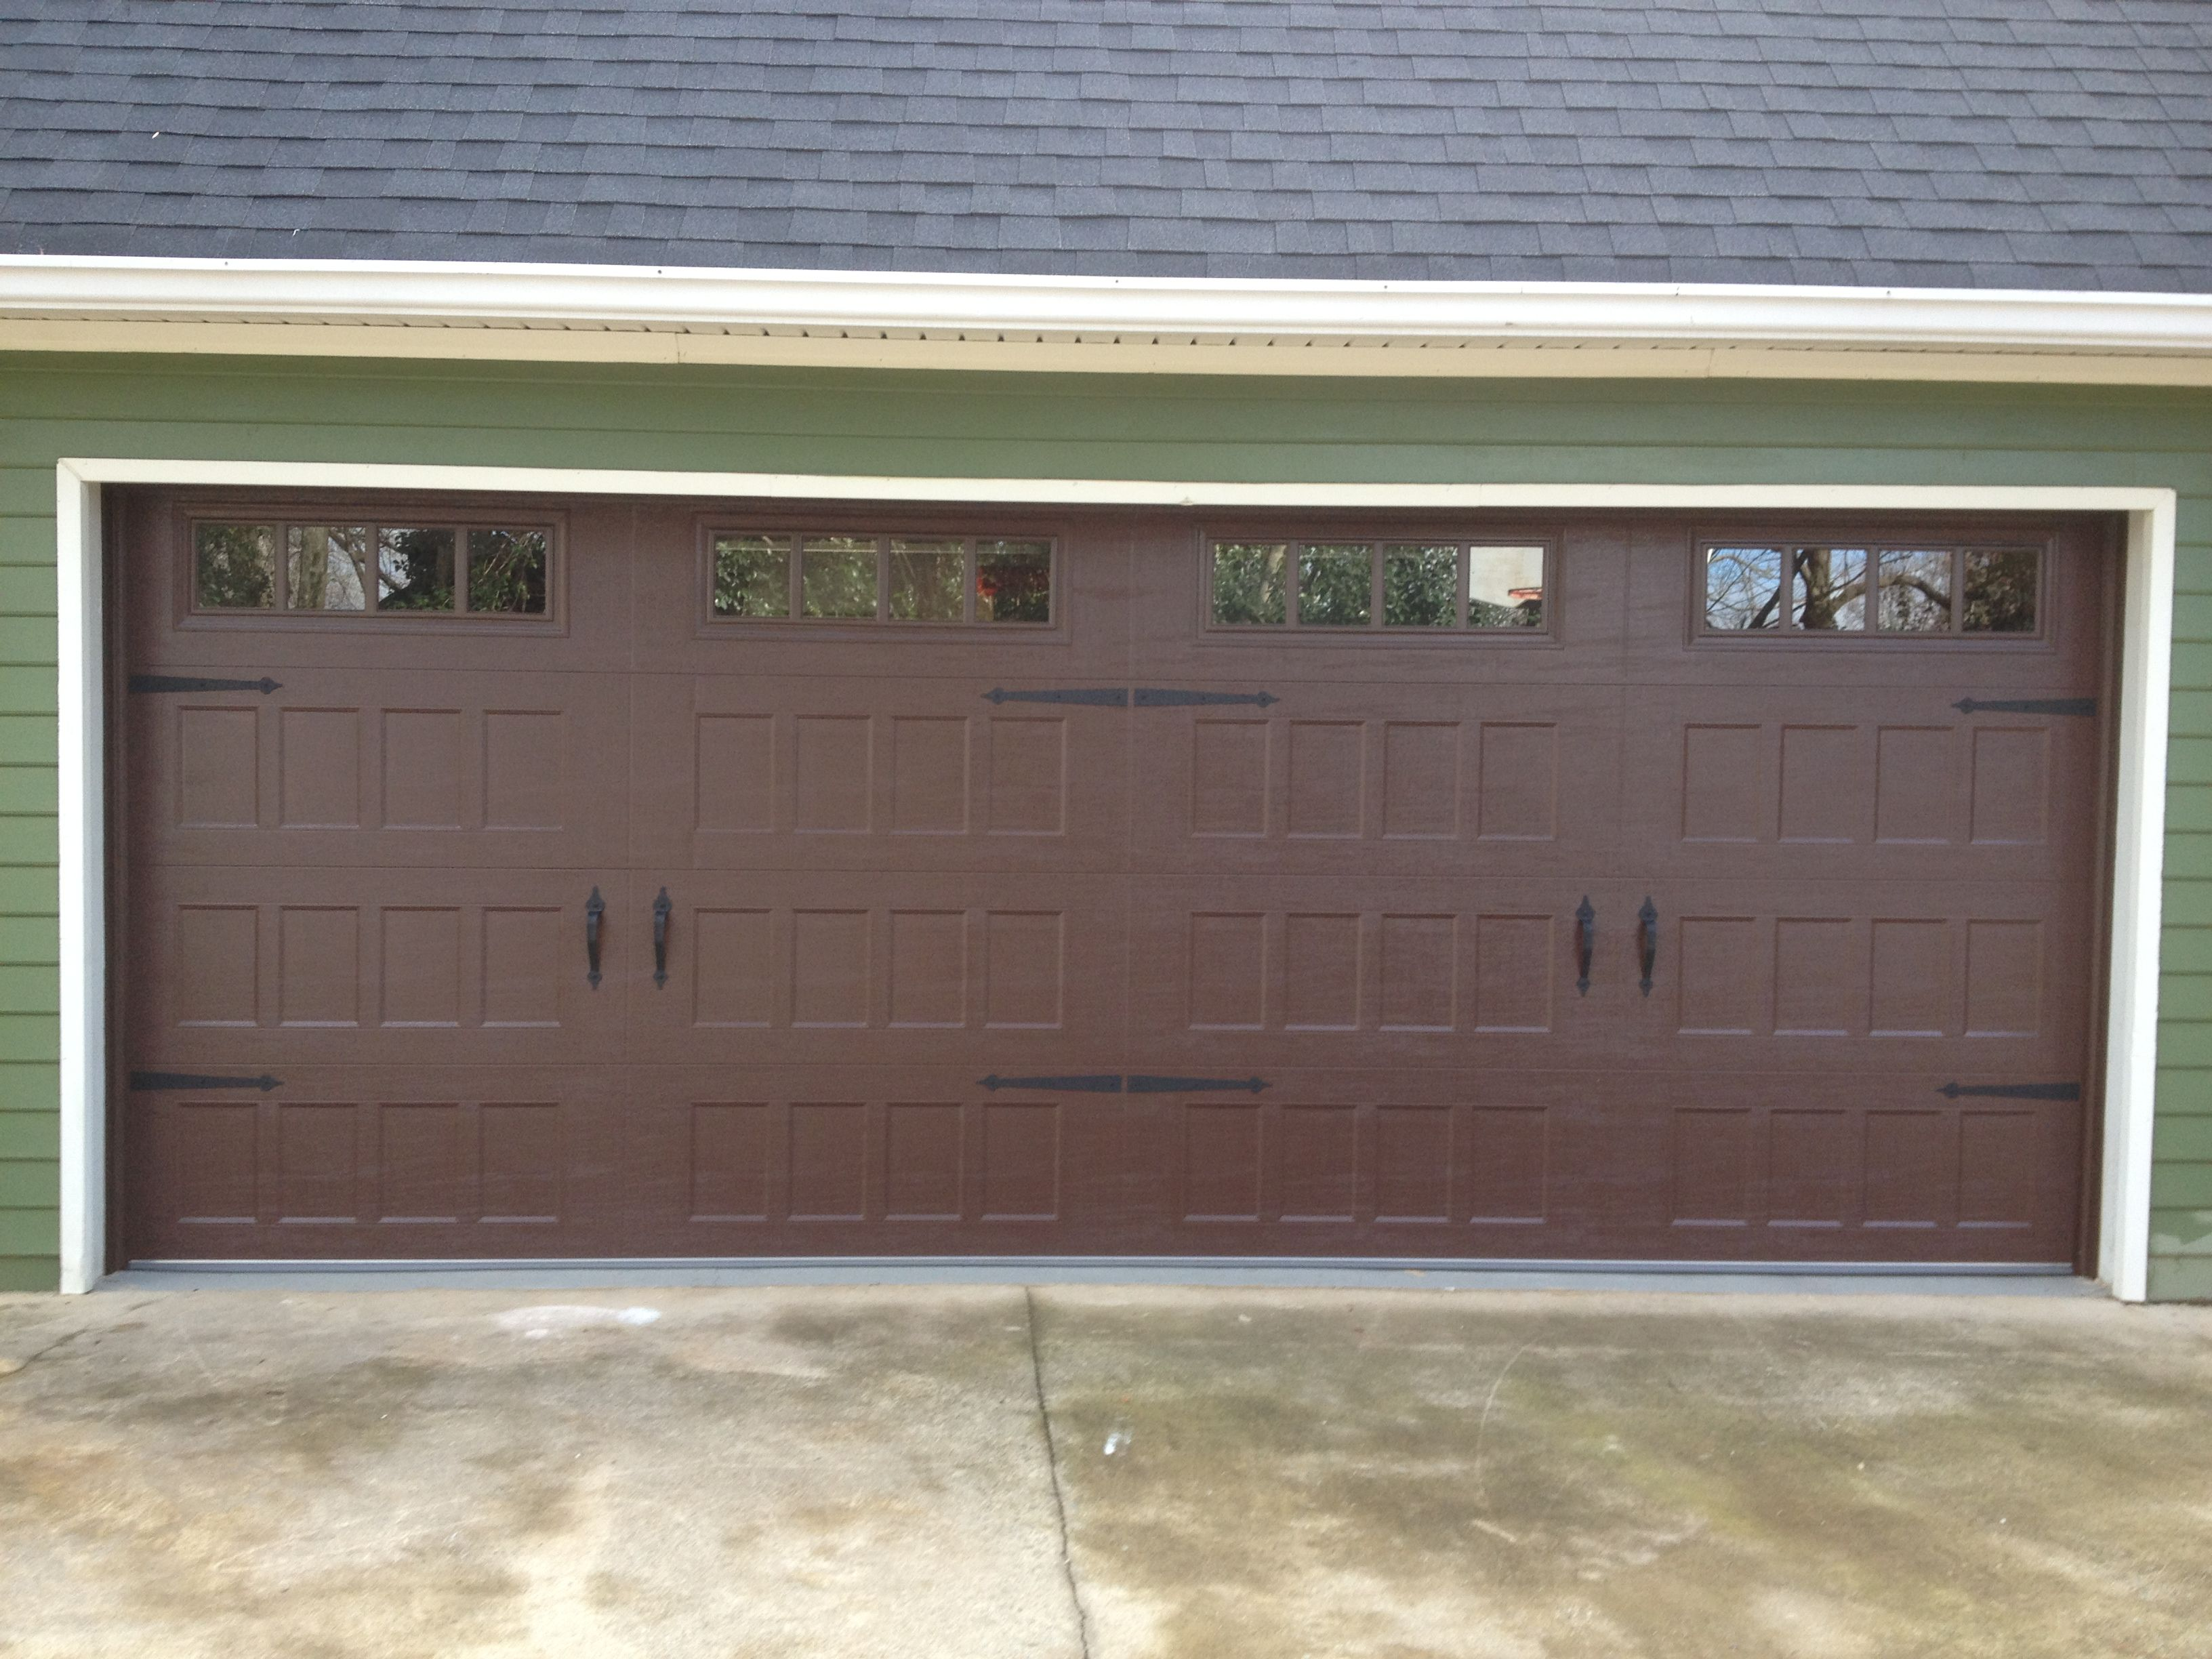 steel recessed panel dark wood grain carriage house garage